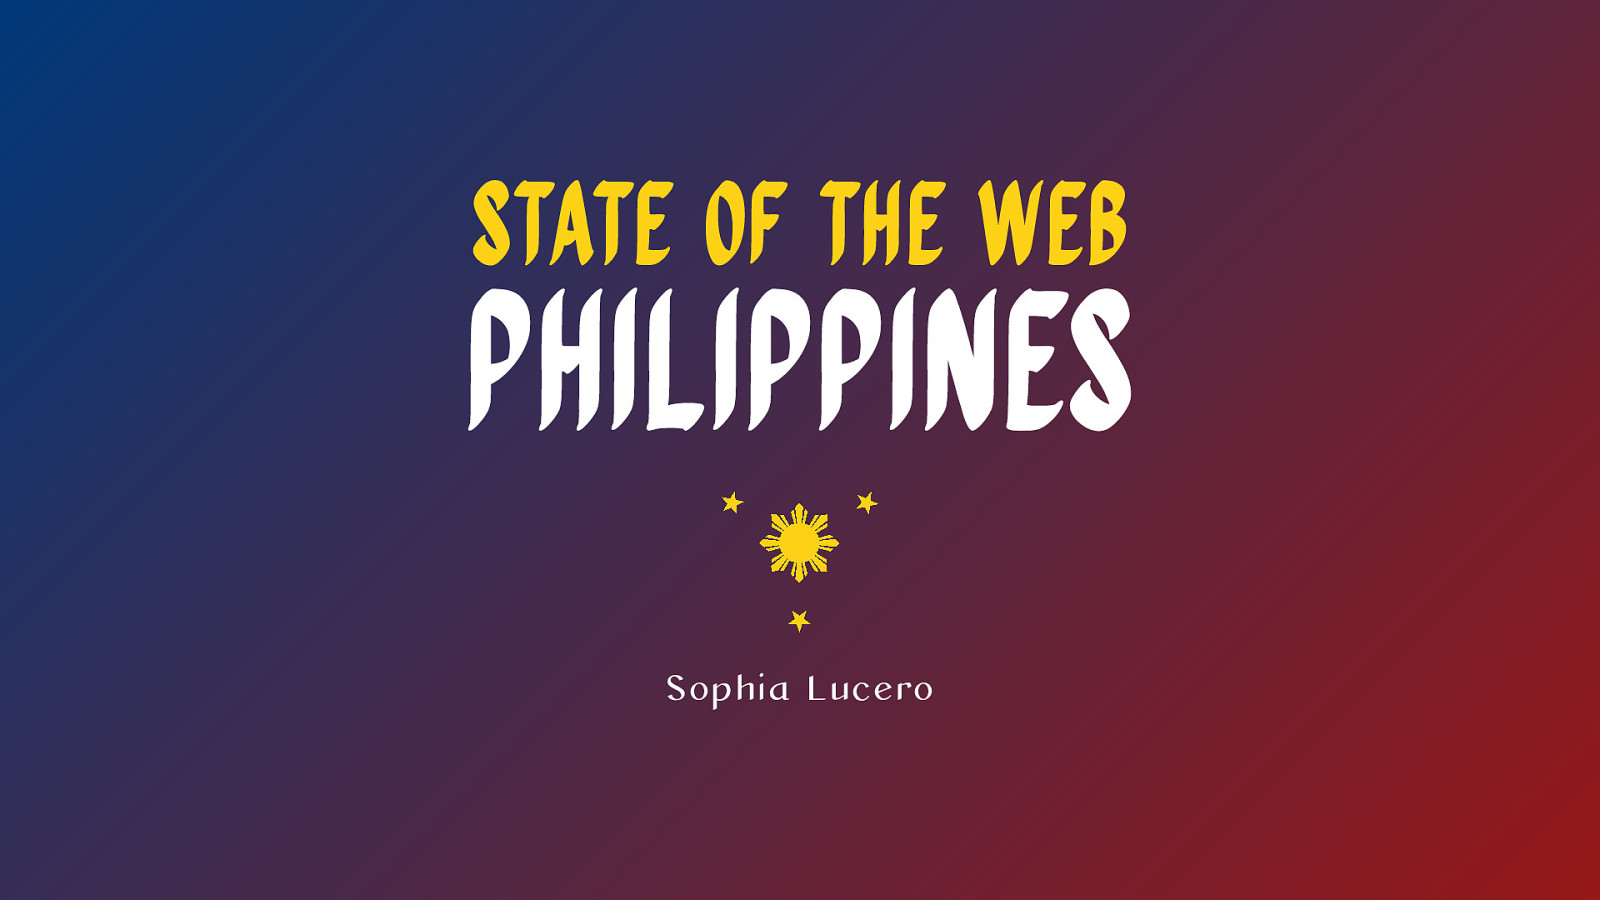 State of the Web - Philippines